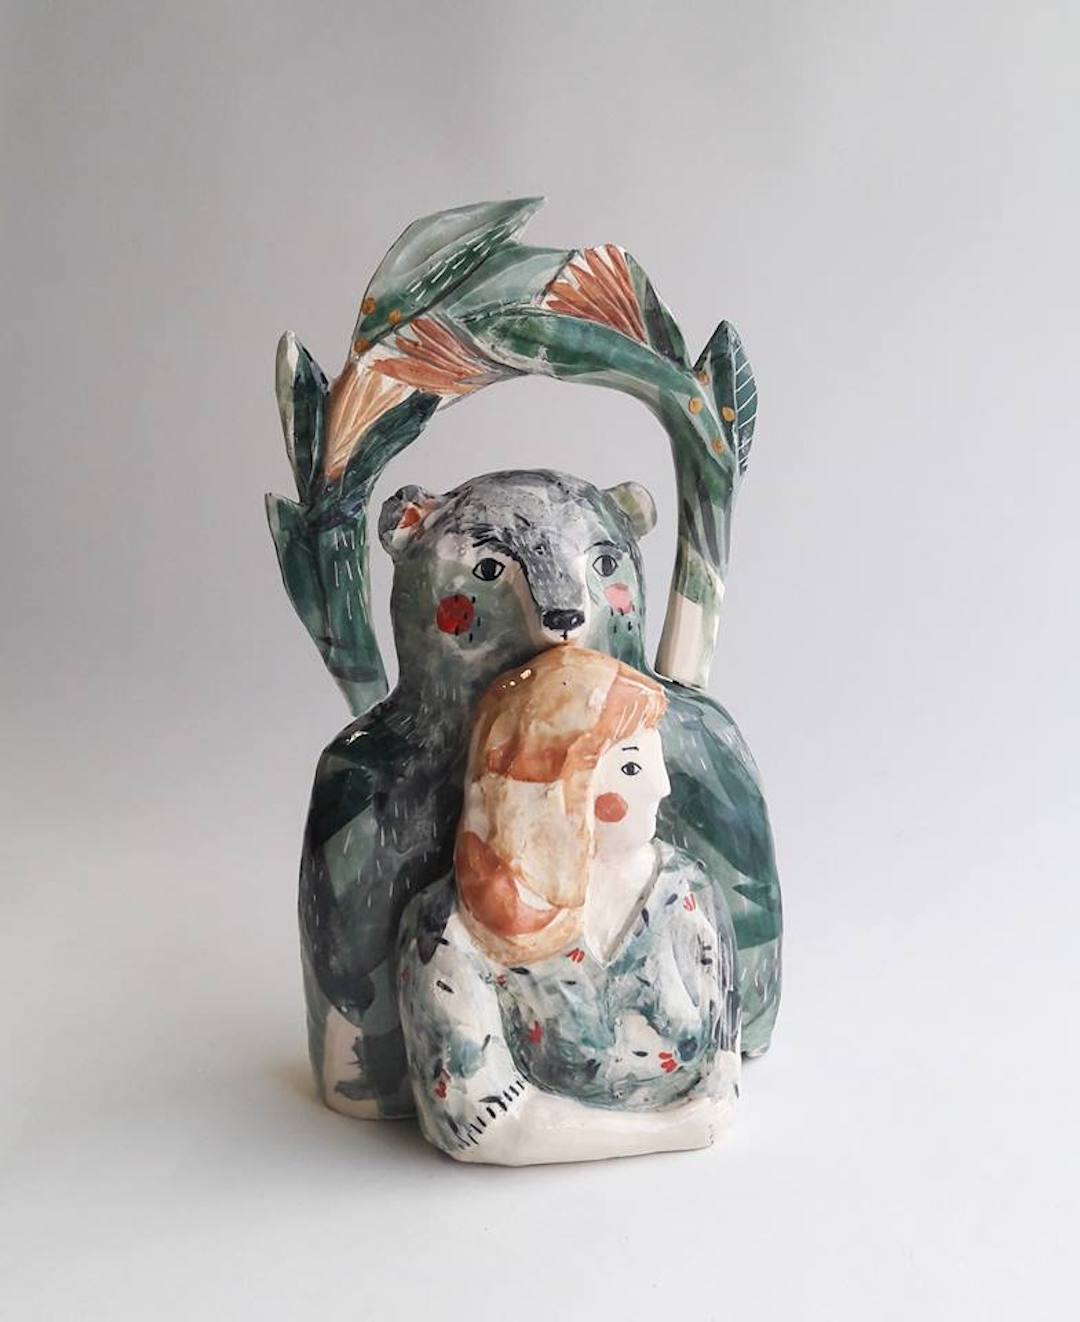 Watercolor ceramics by Elise Lefebvre